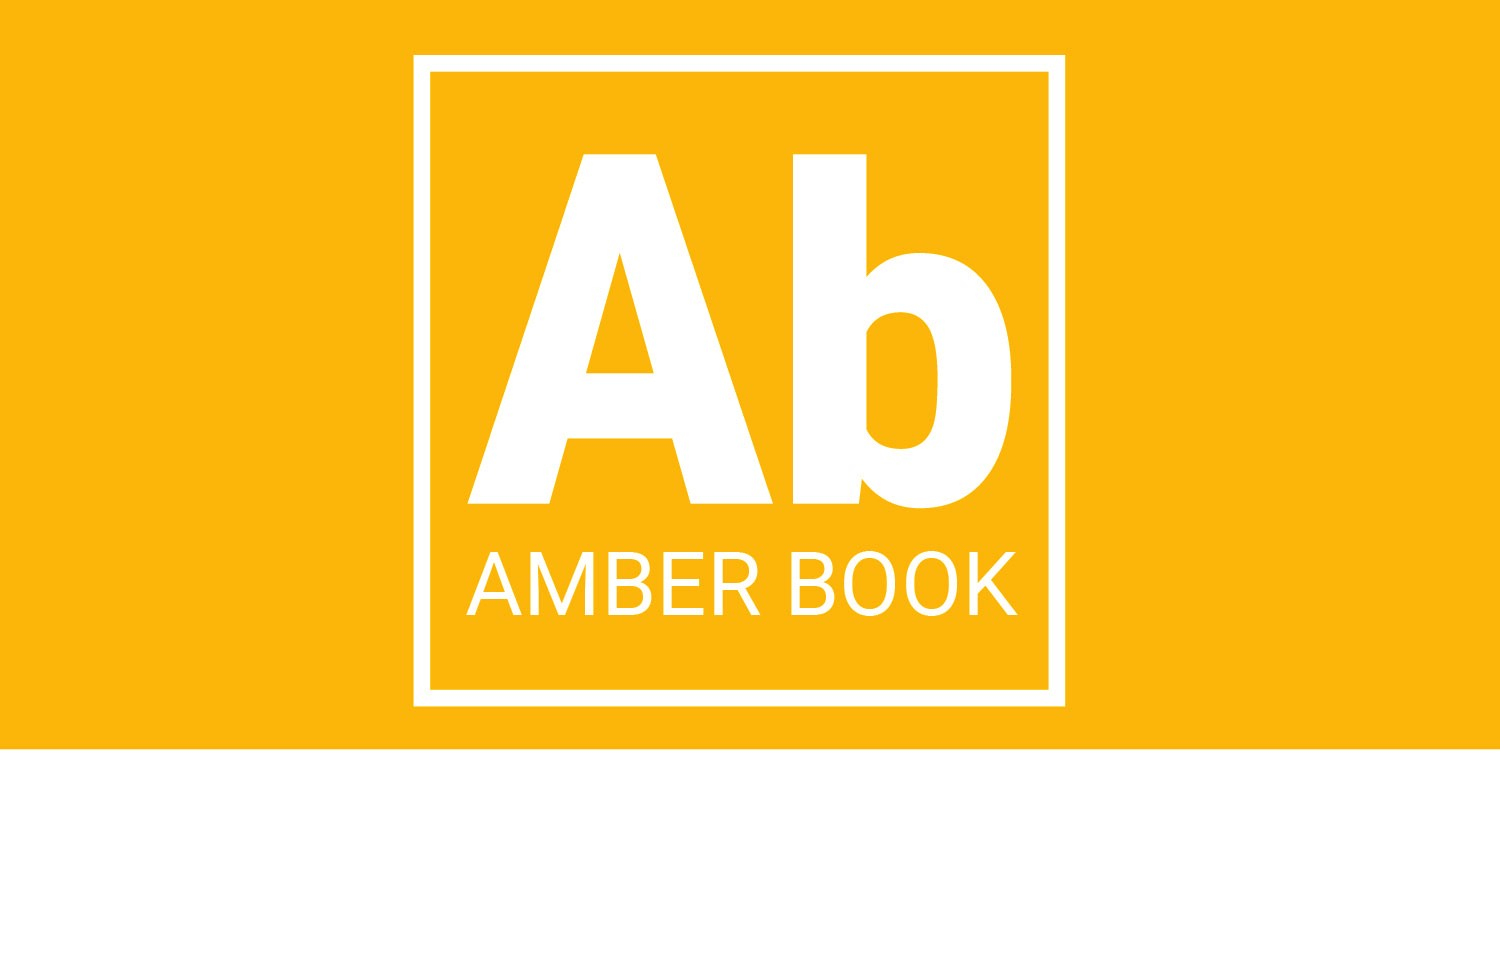 Amber Book